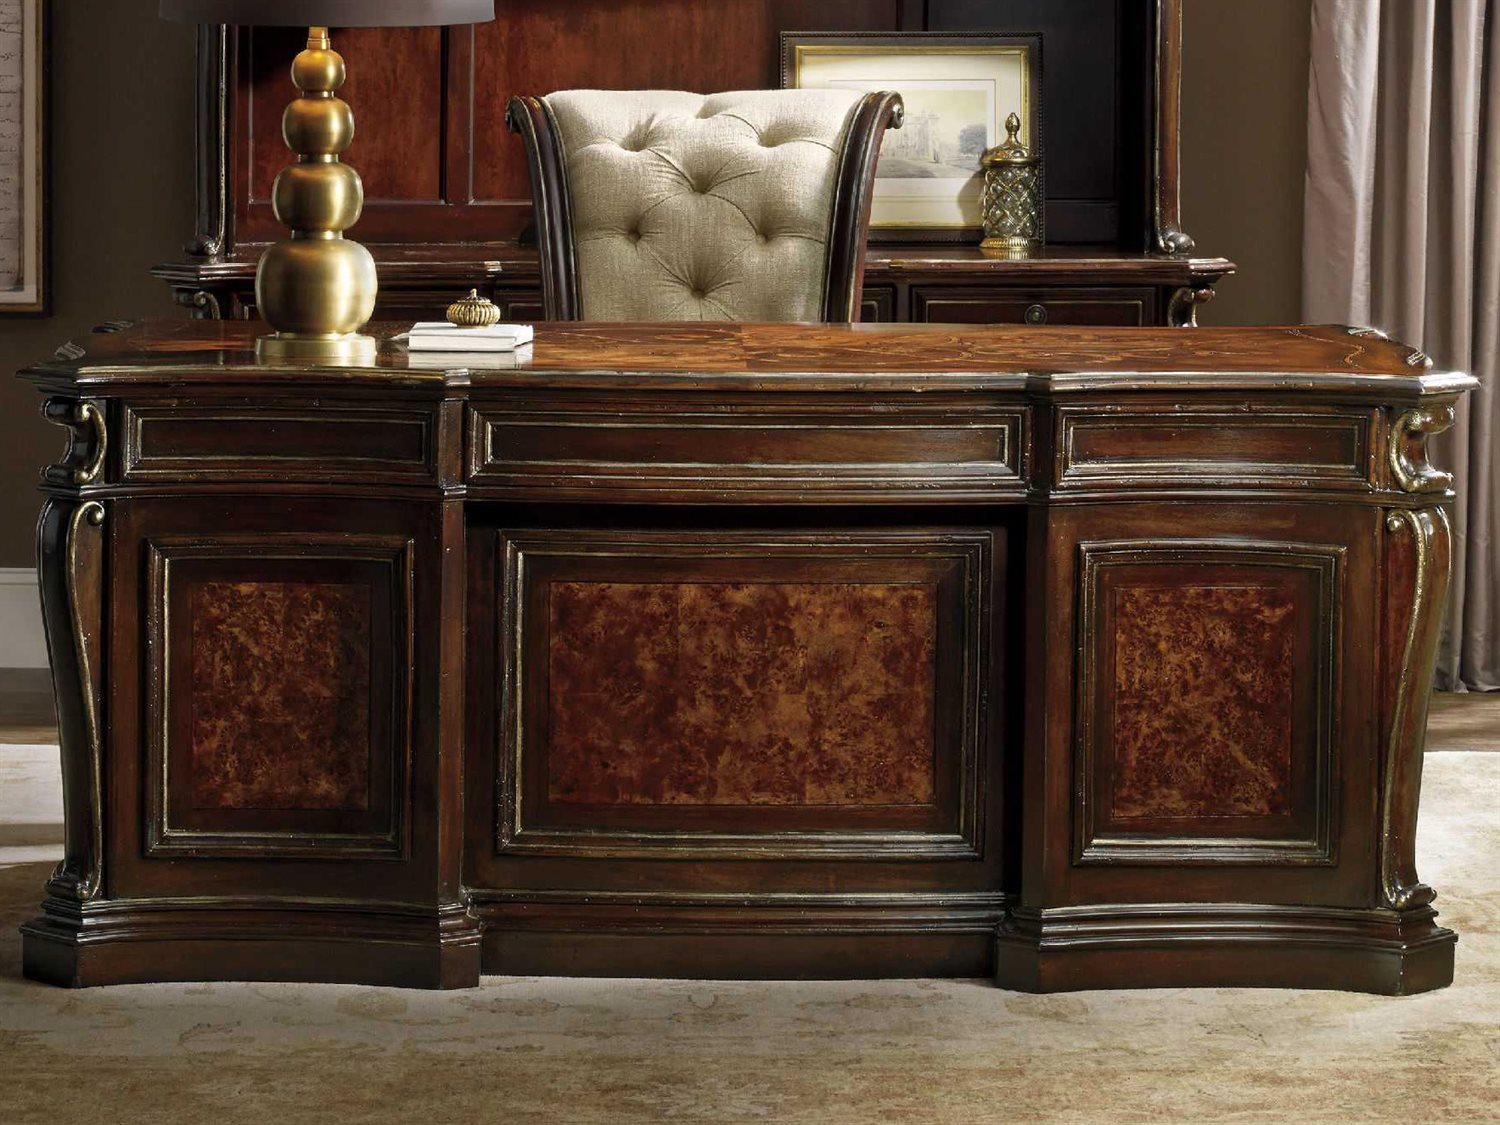 Executive Office Furniture: Hooker Furniture Grand Palais Dark Wood 73''L X 39''W